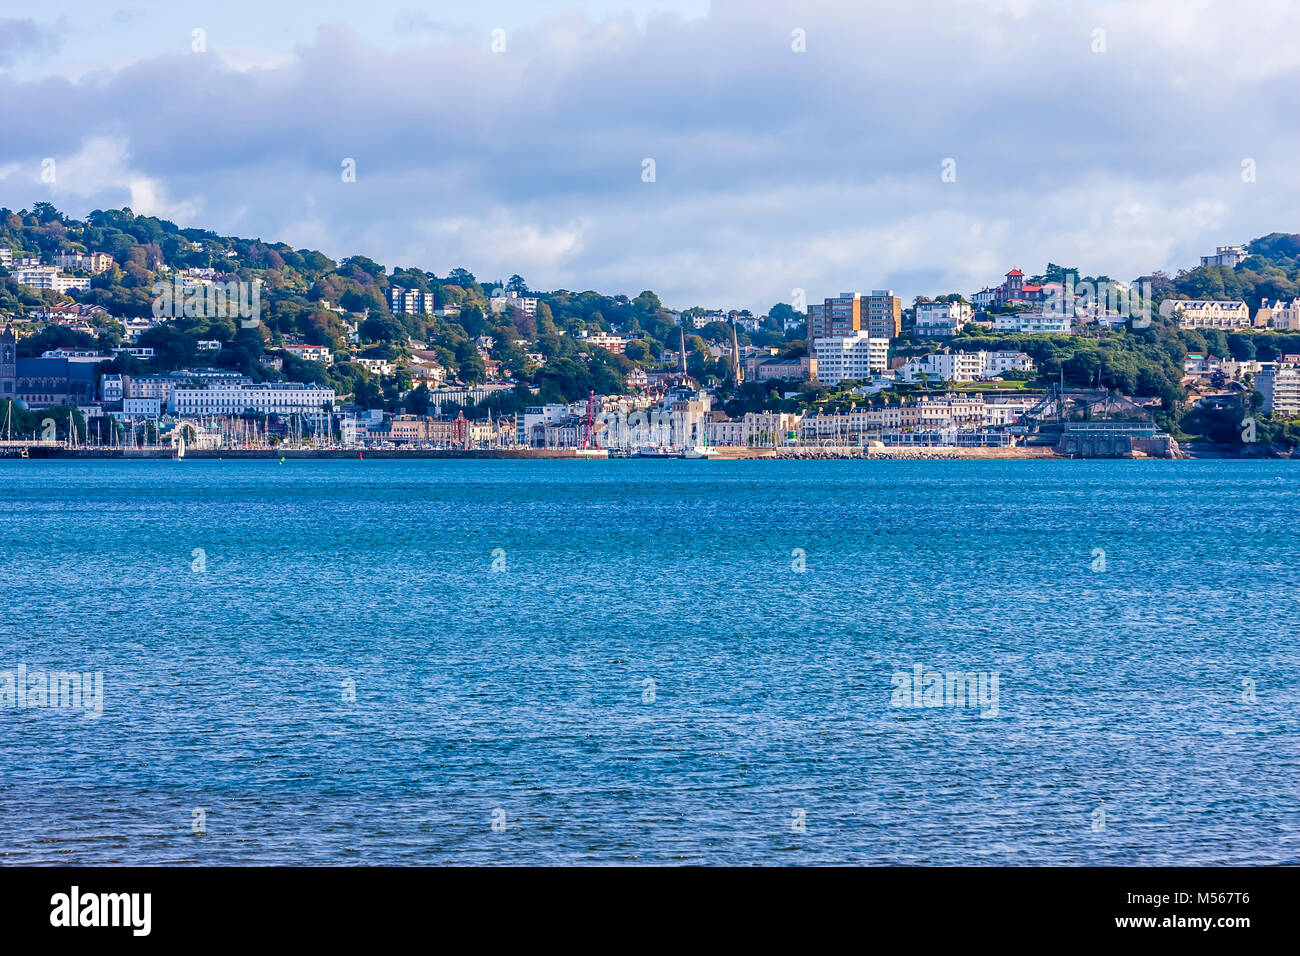 A view across the bay at Brixham, South Devon in England. - Stock Image